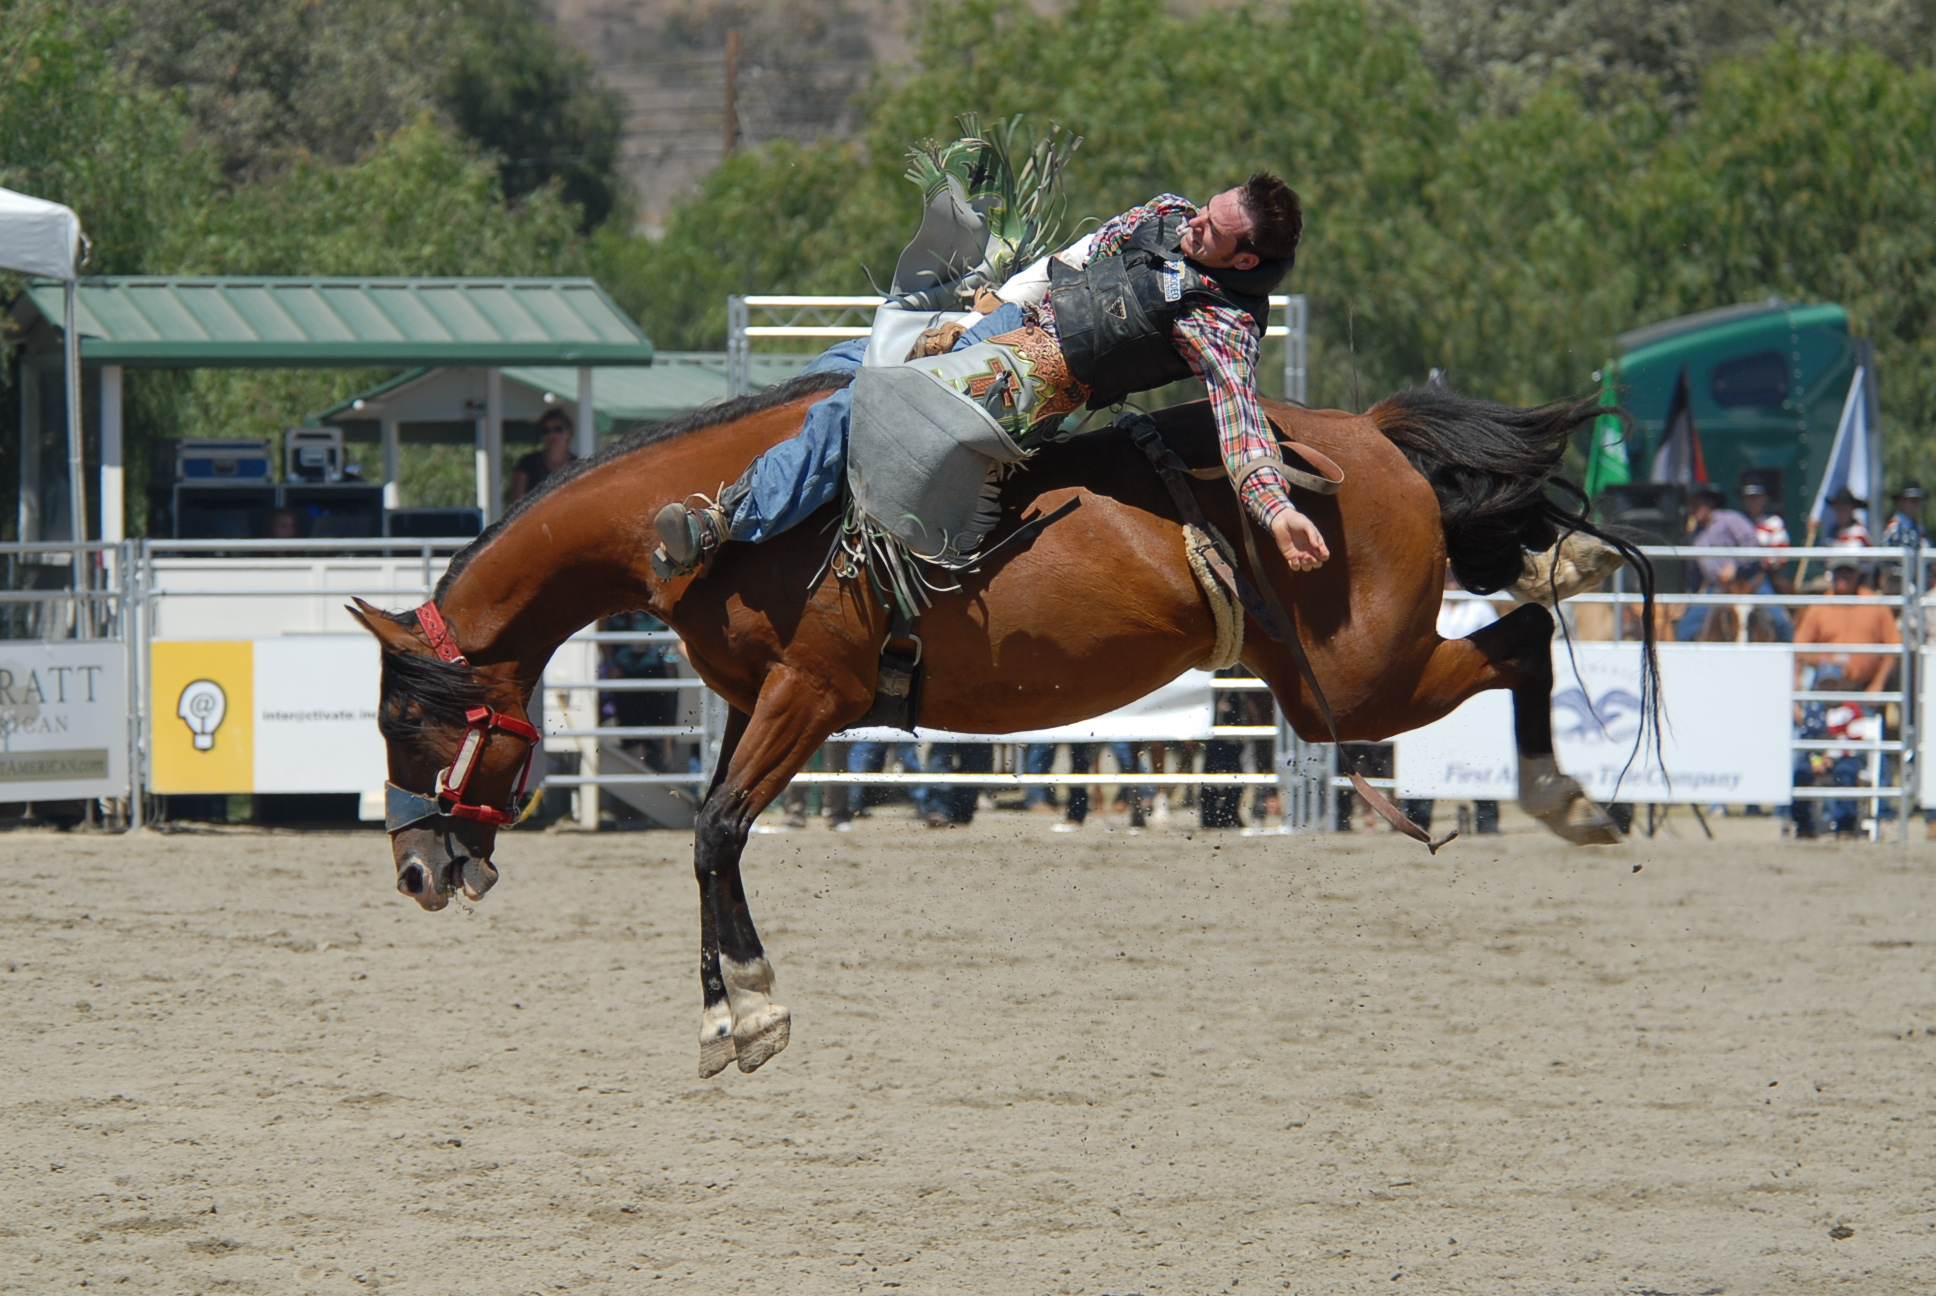 Rodeo Week Returns For Second Ride The Capistrano Dispatch